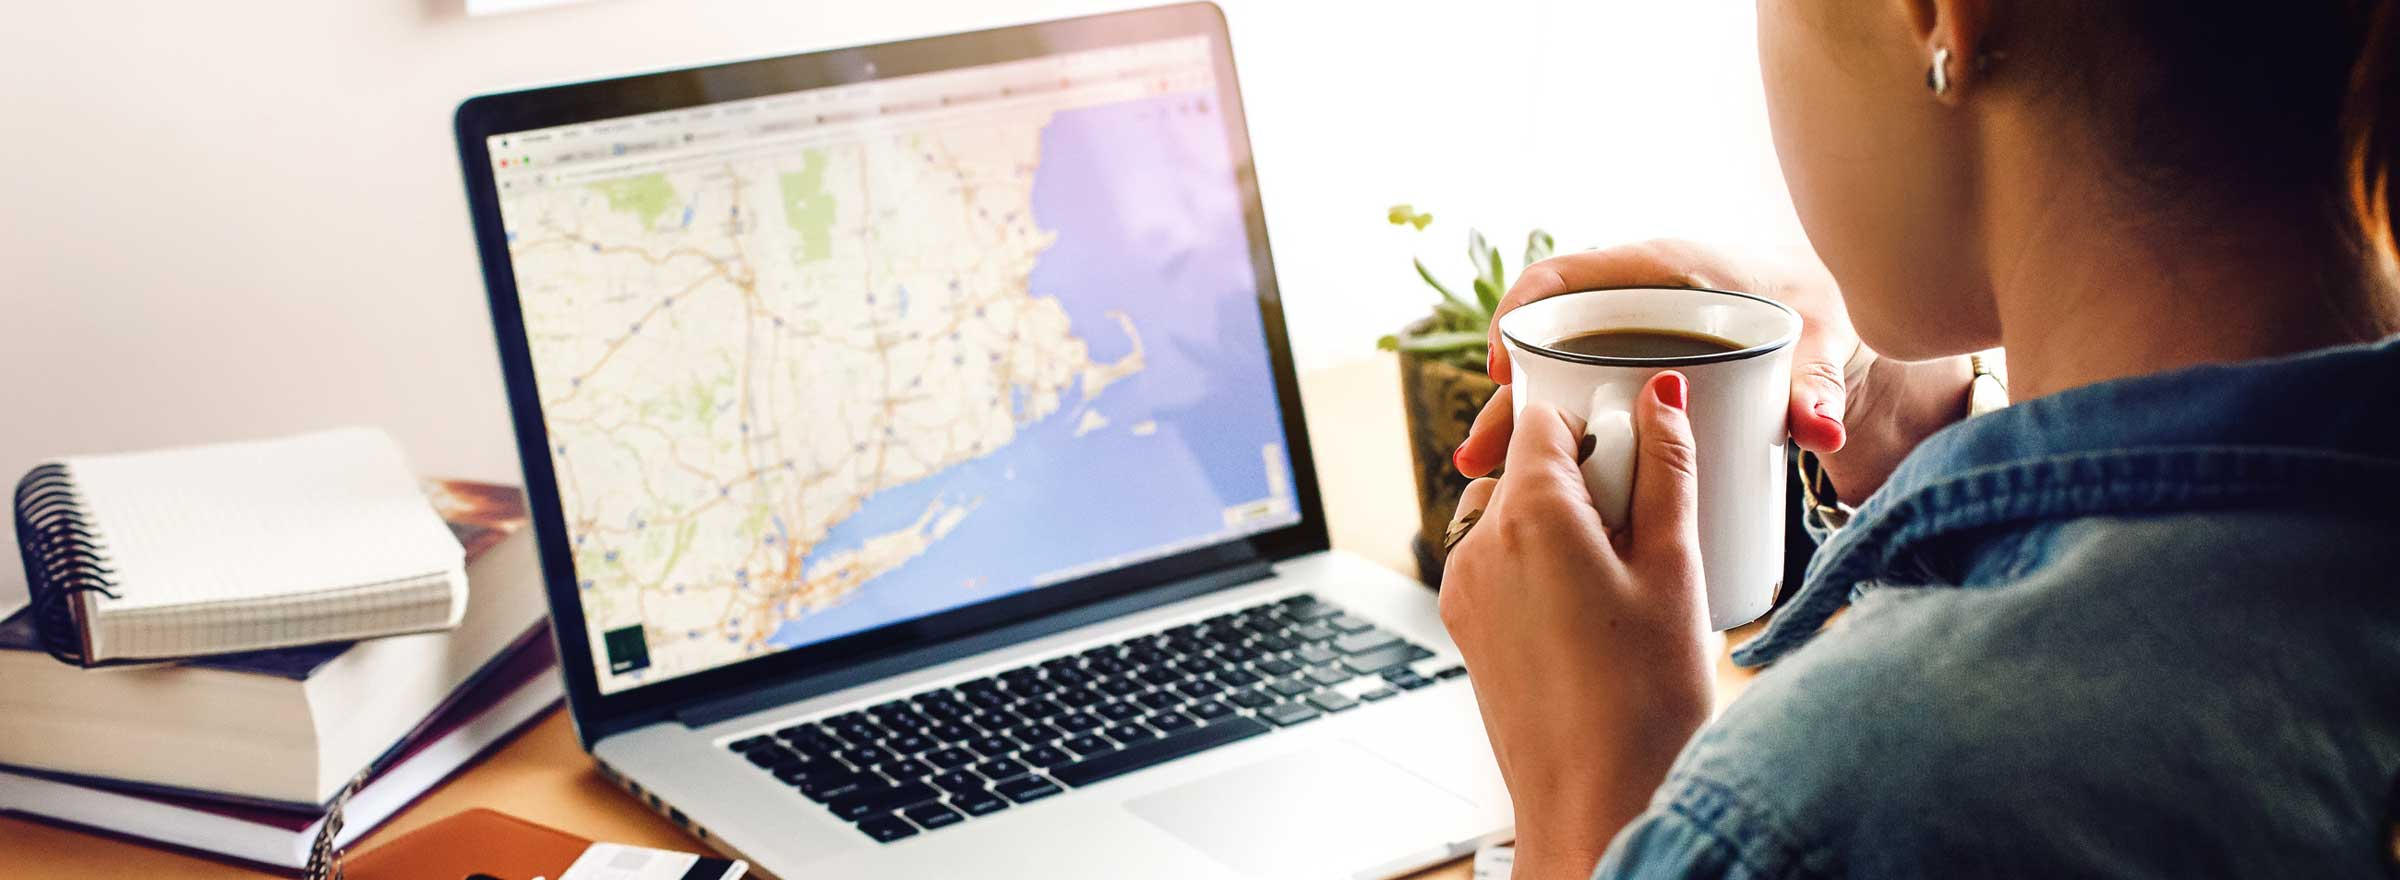 woman drinking coffee and looking at a map of the northeast US on a computer screen